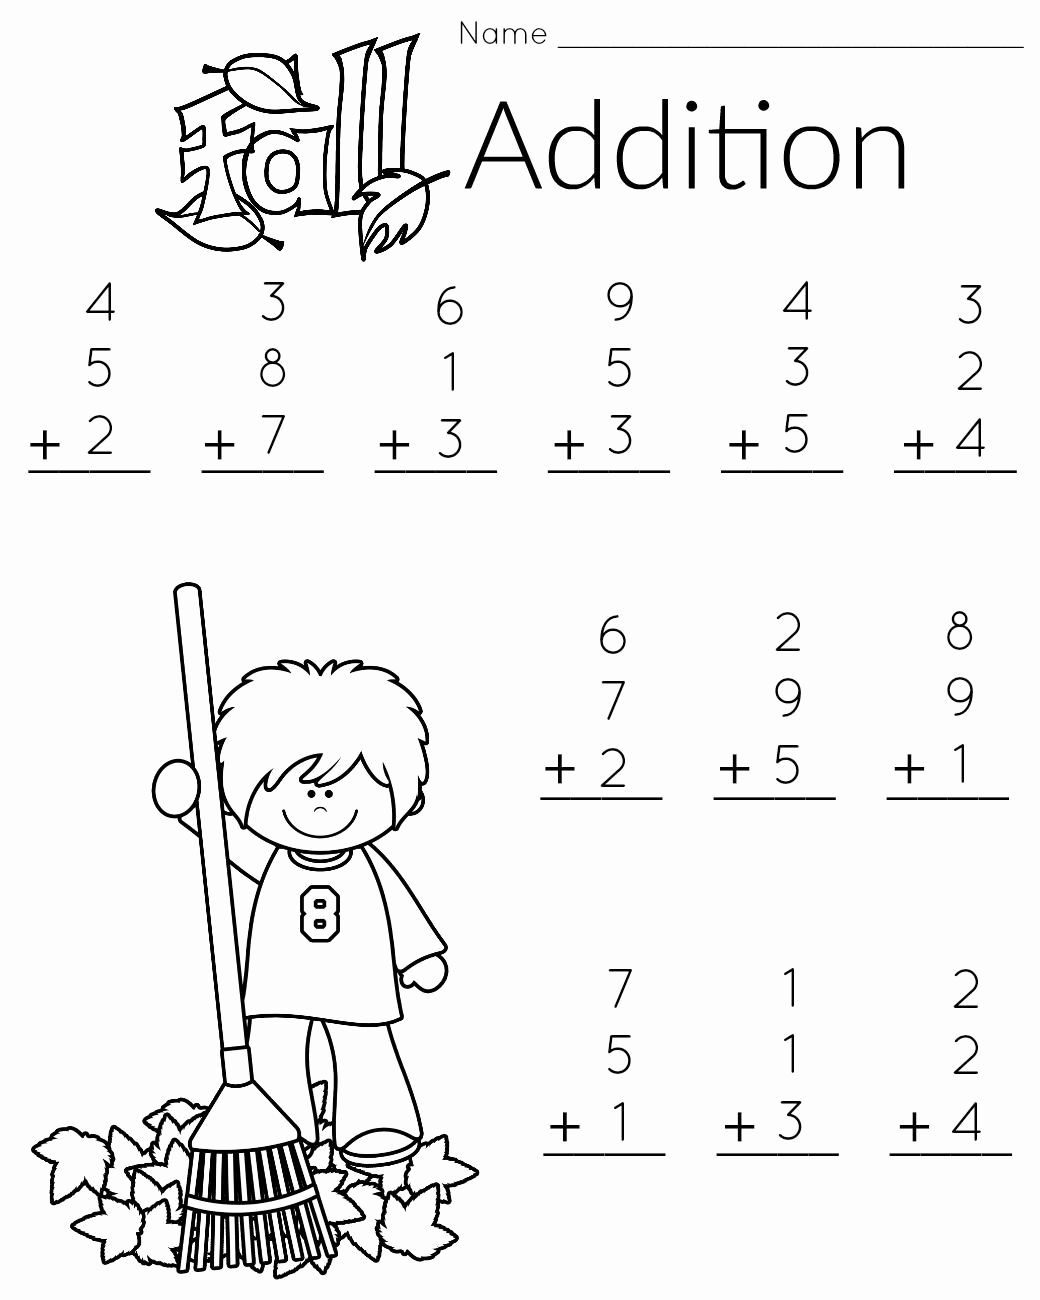 Graphing Worksheets for First Grade Awesome 1st Grade Worksheets Best Coloring Pages for Kids